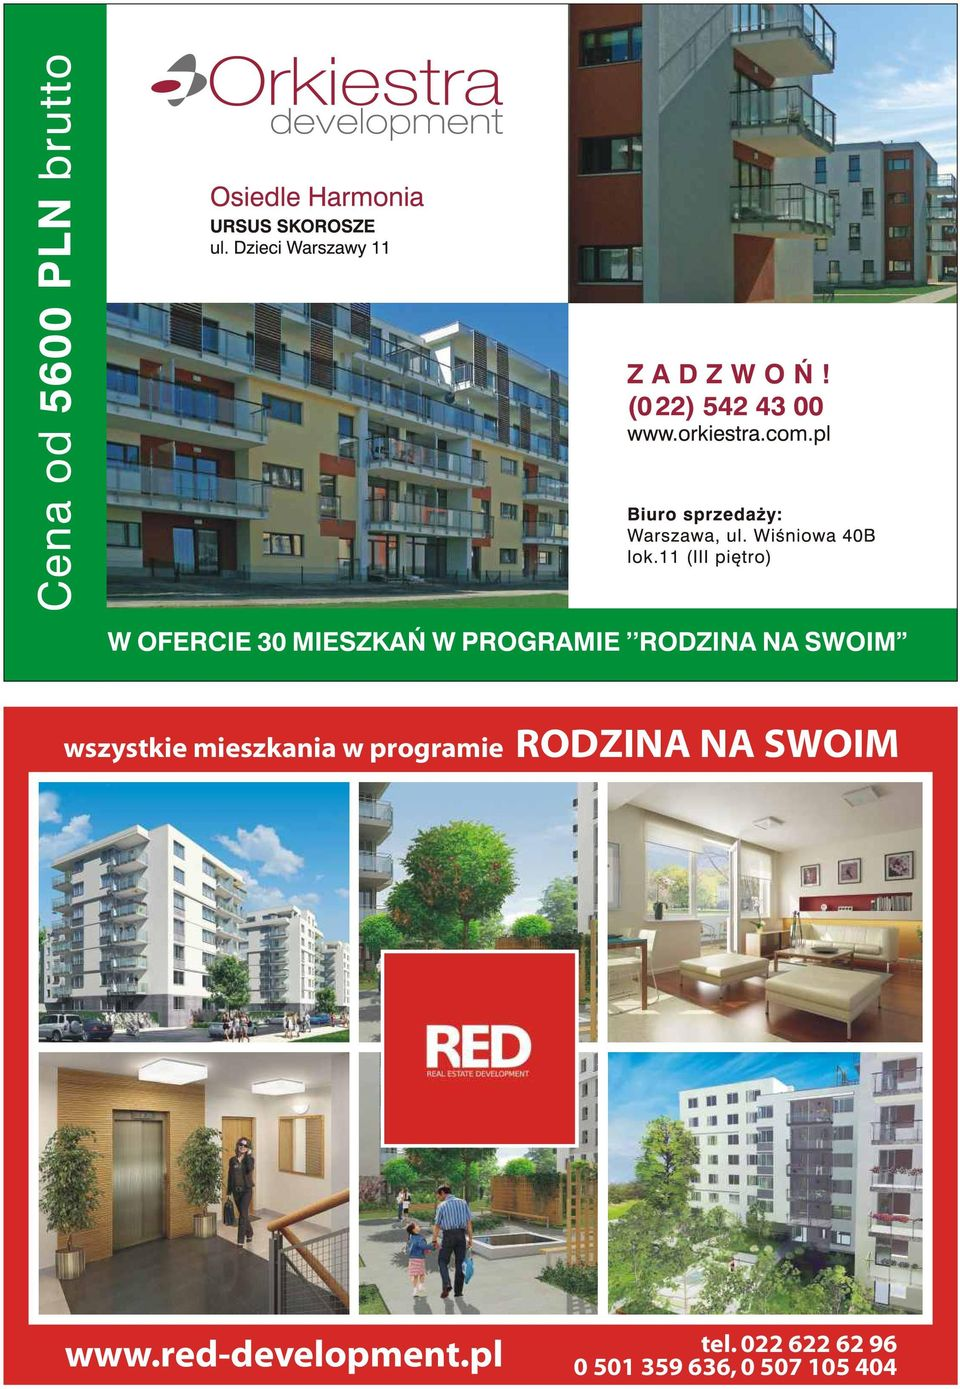 www.red-development.pl tel.